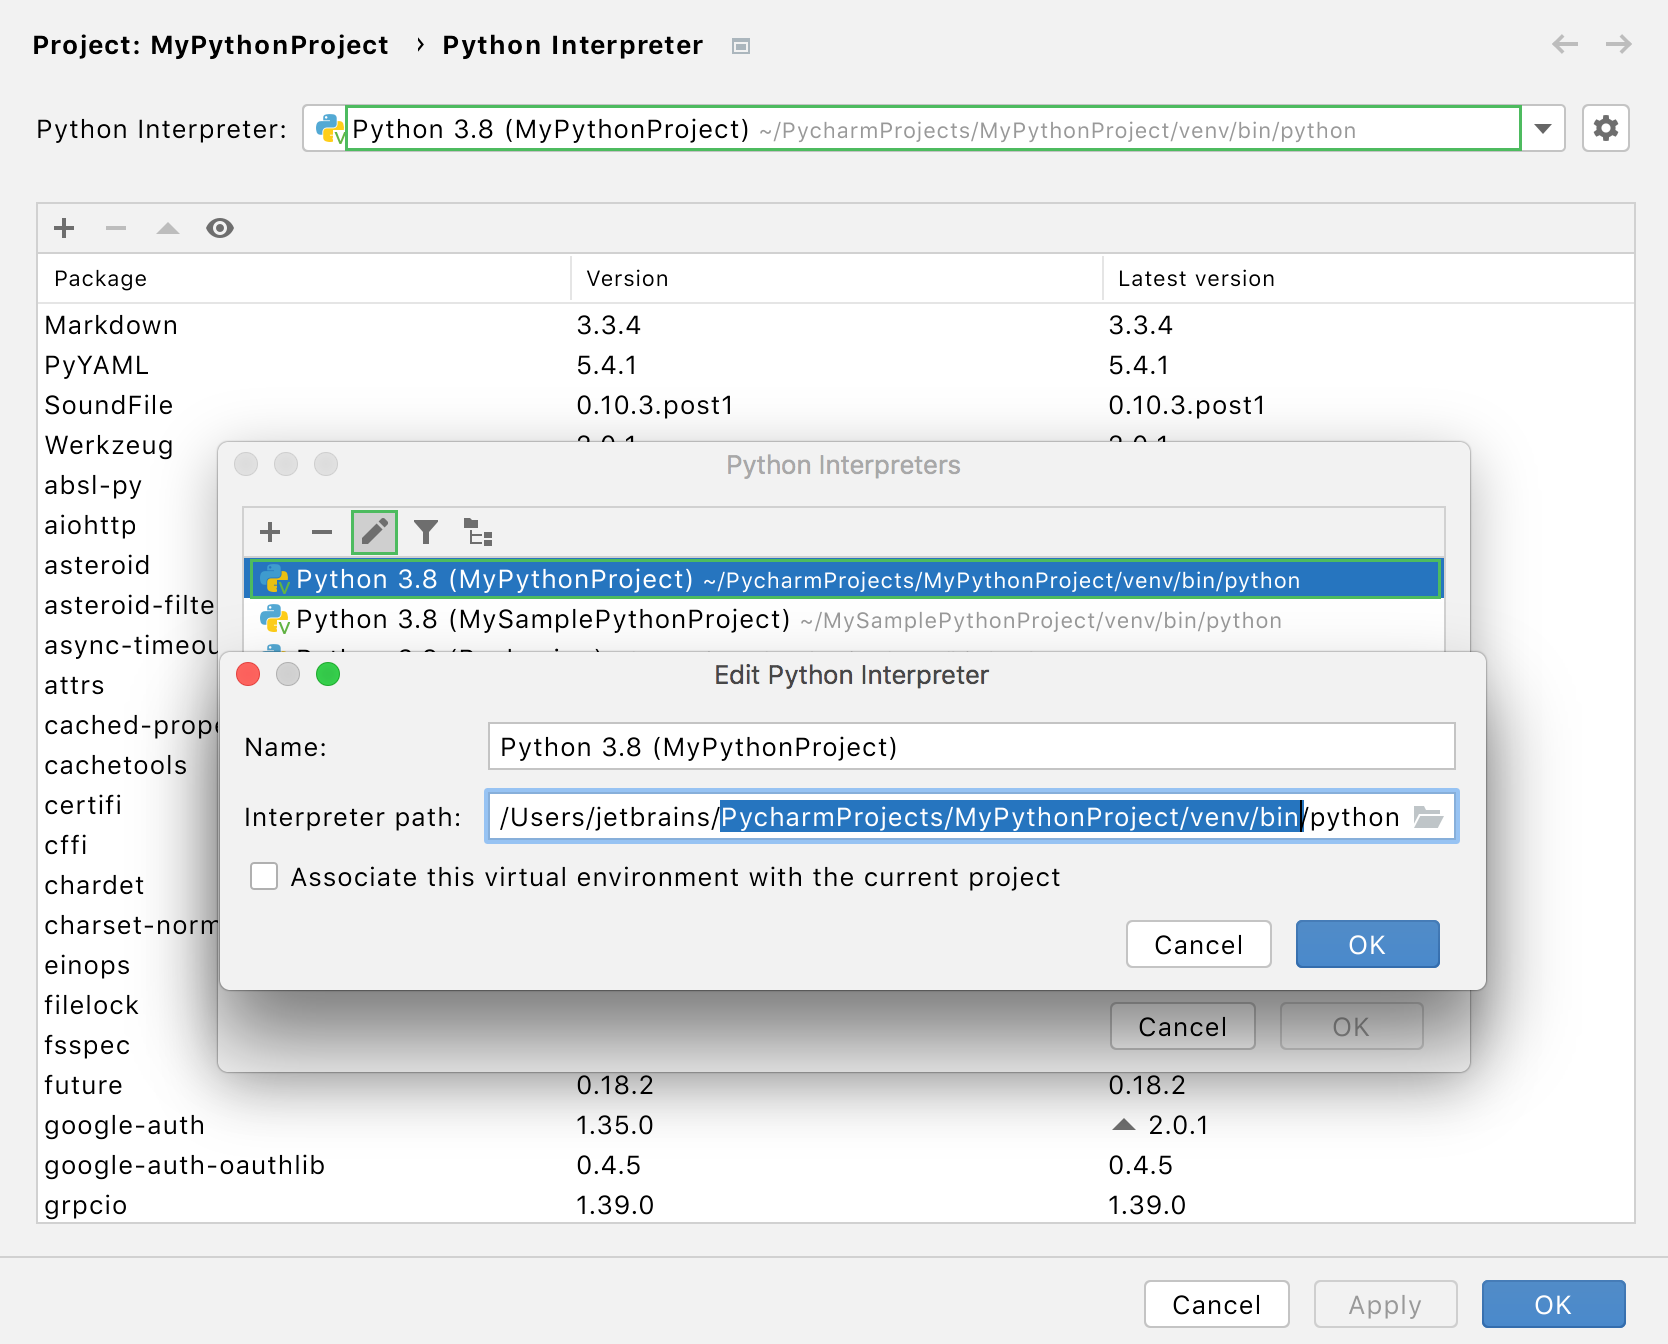 Discover the interpreter path for the selected venv